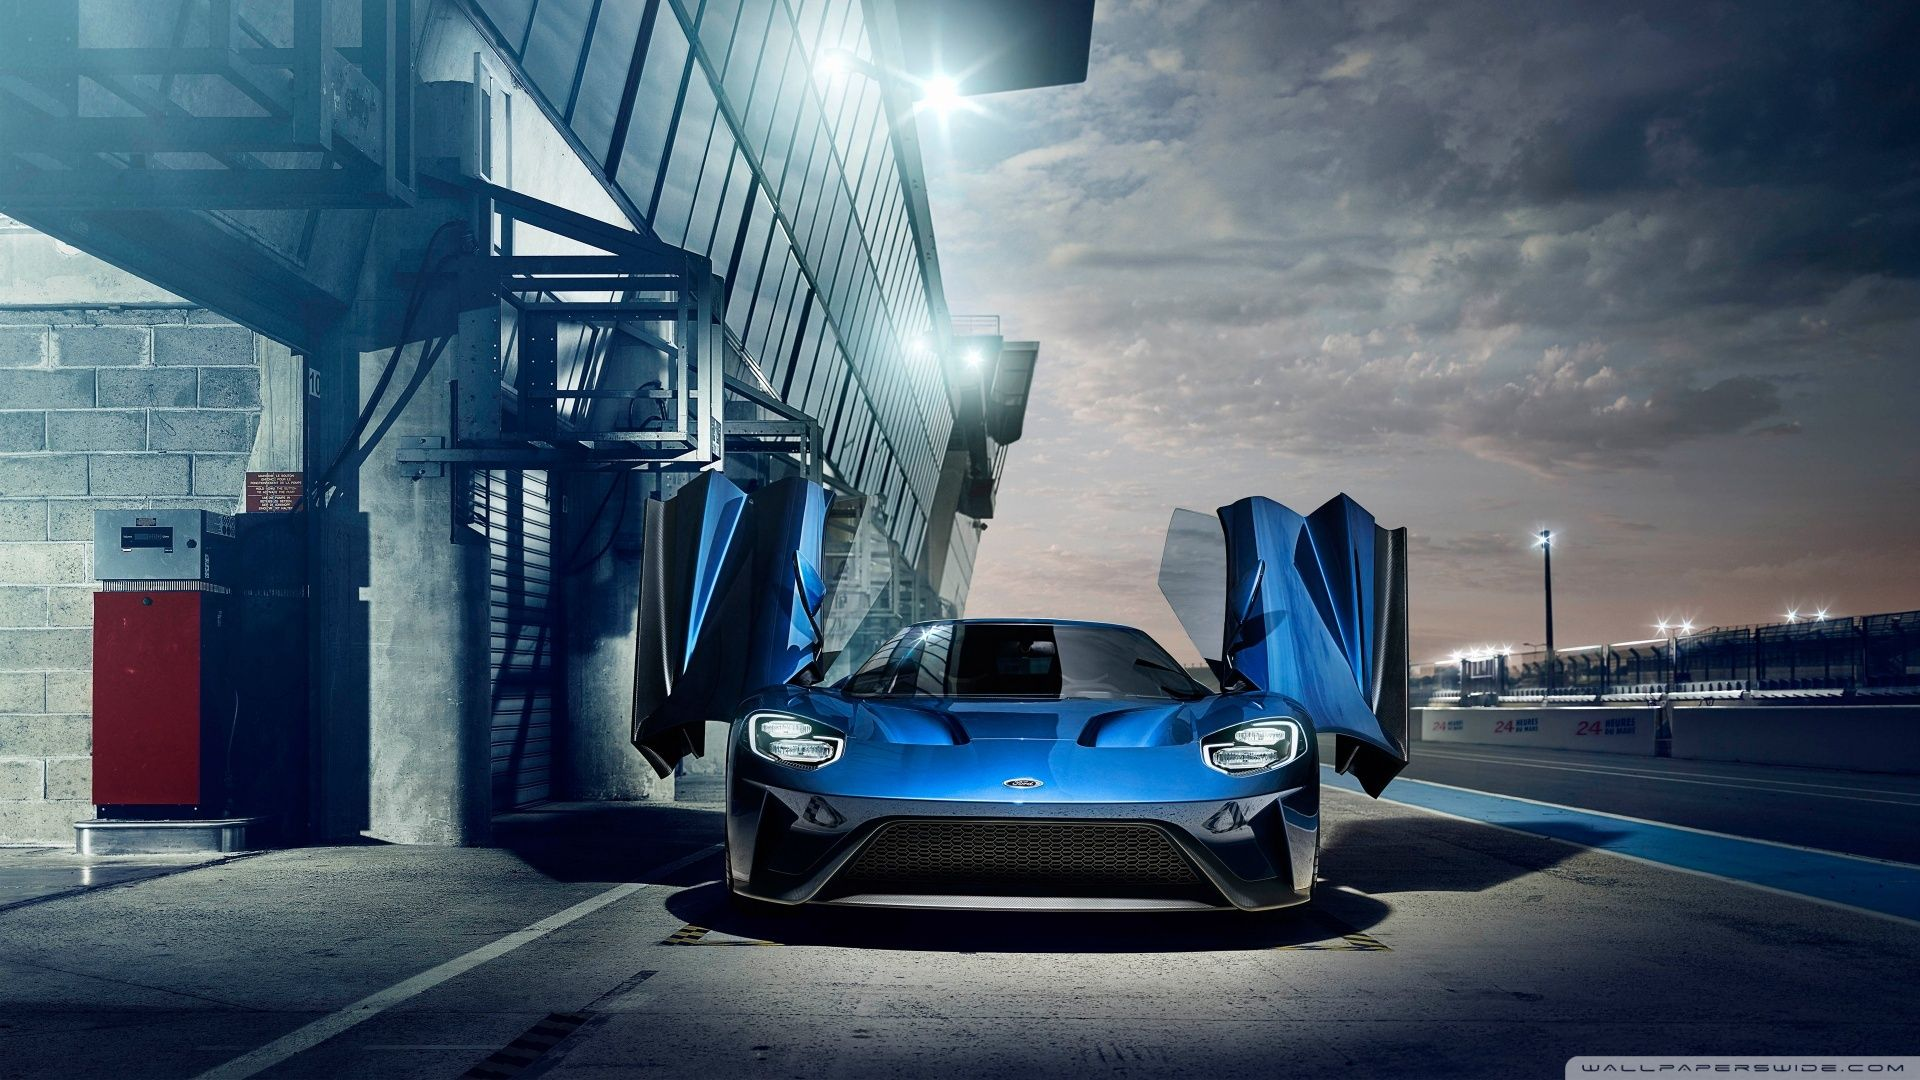 Blue Sports Cars Supercars Wallpapers - Top Free Blue Sports Cars